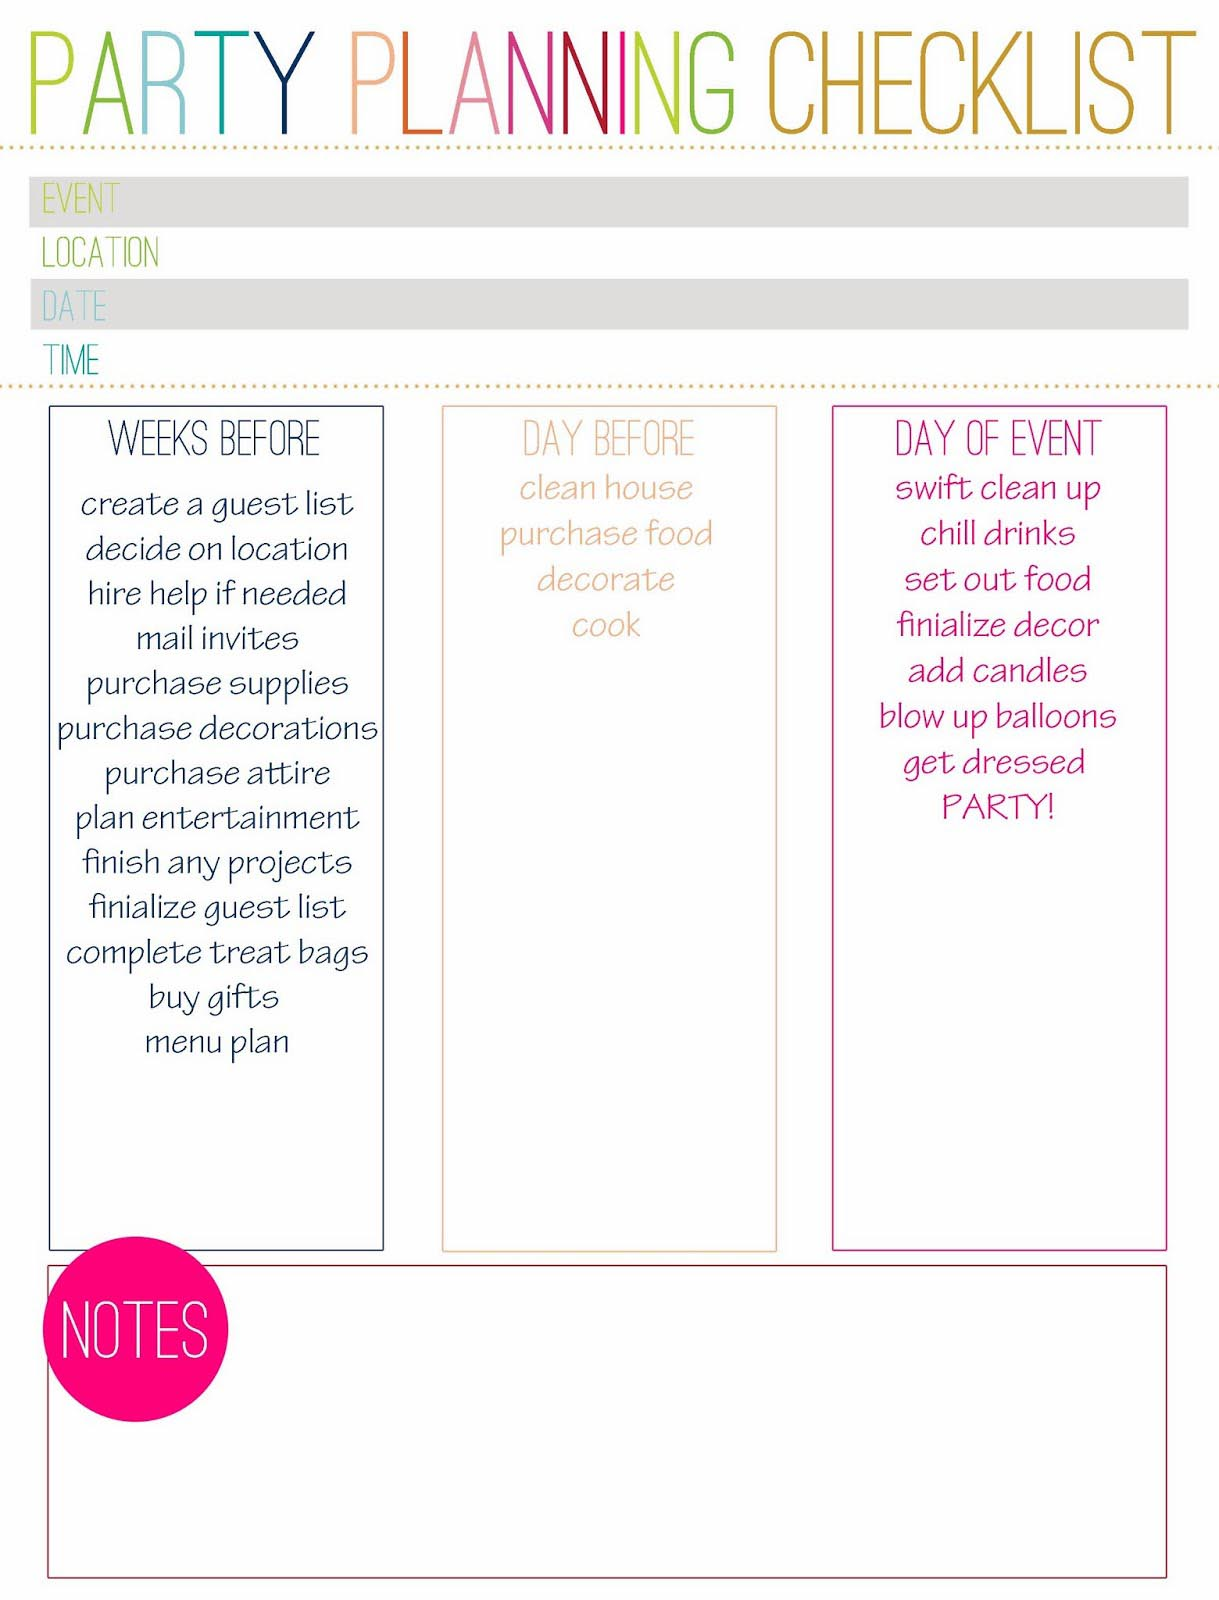 Holiday Party Planning Checklist